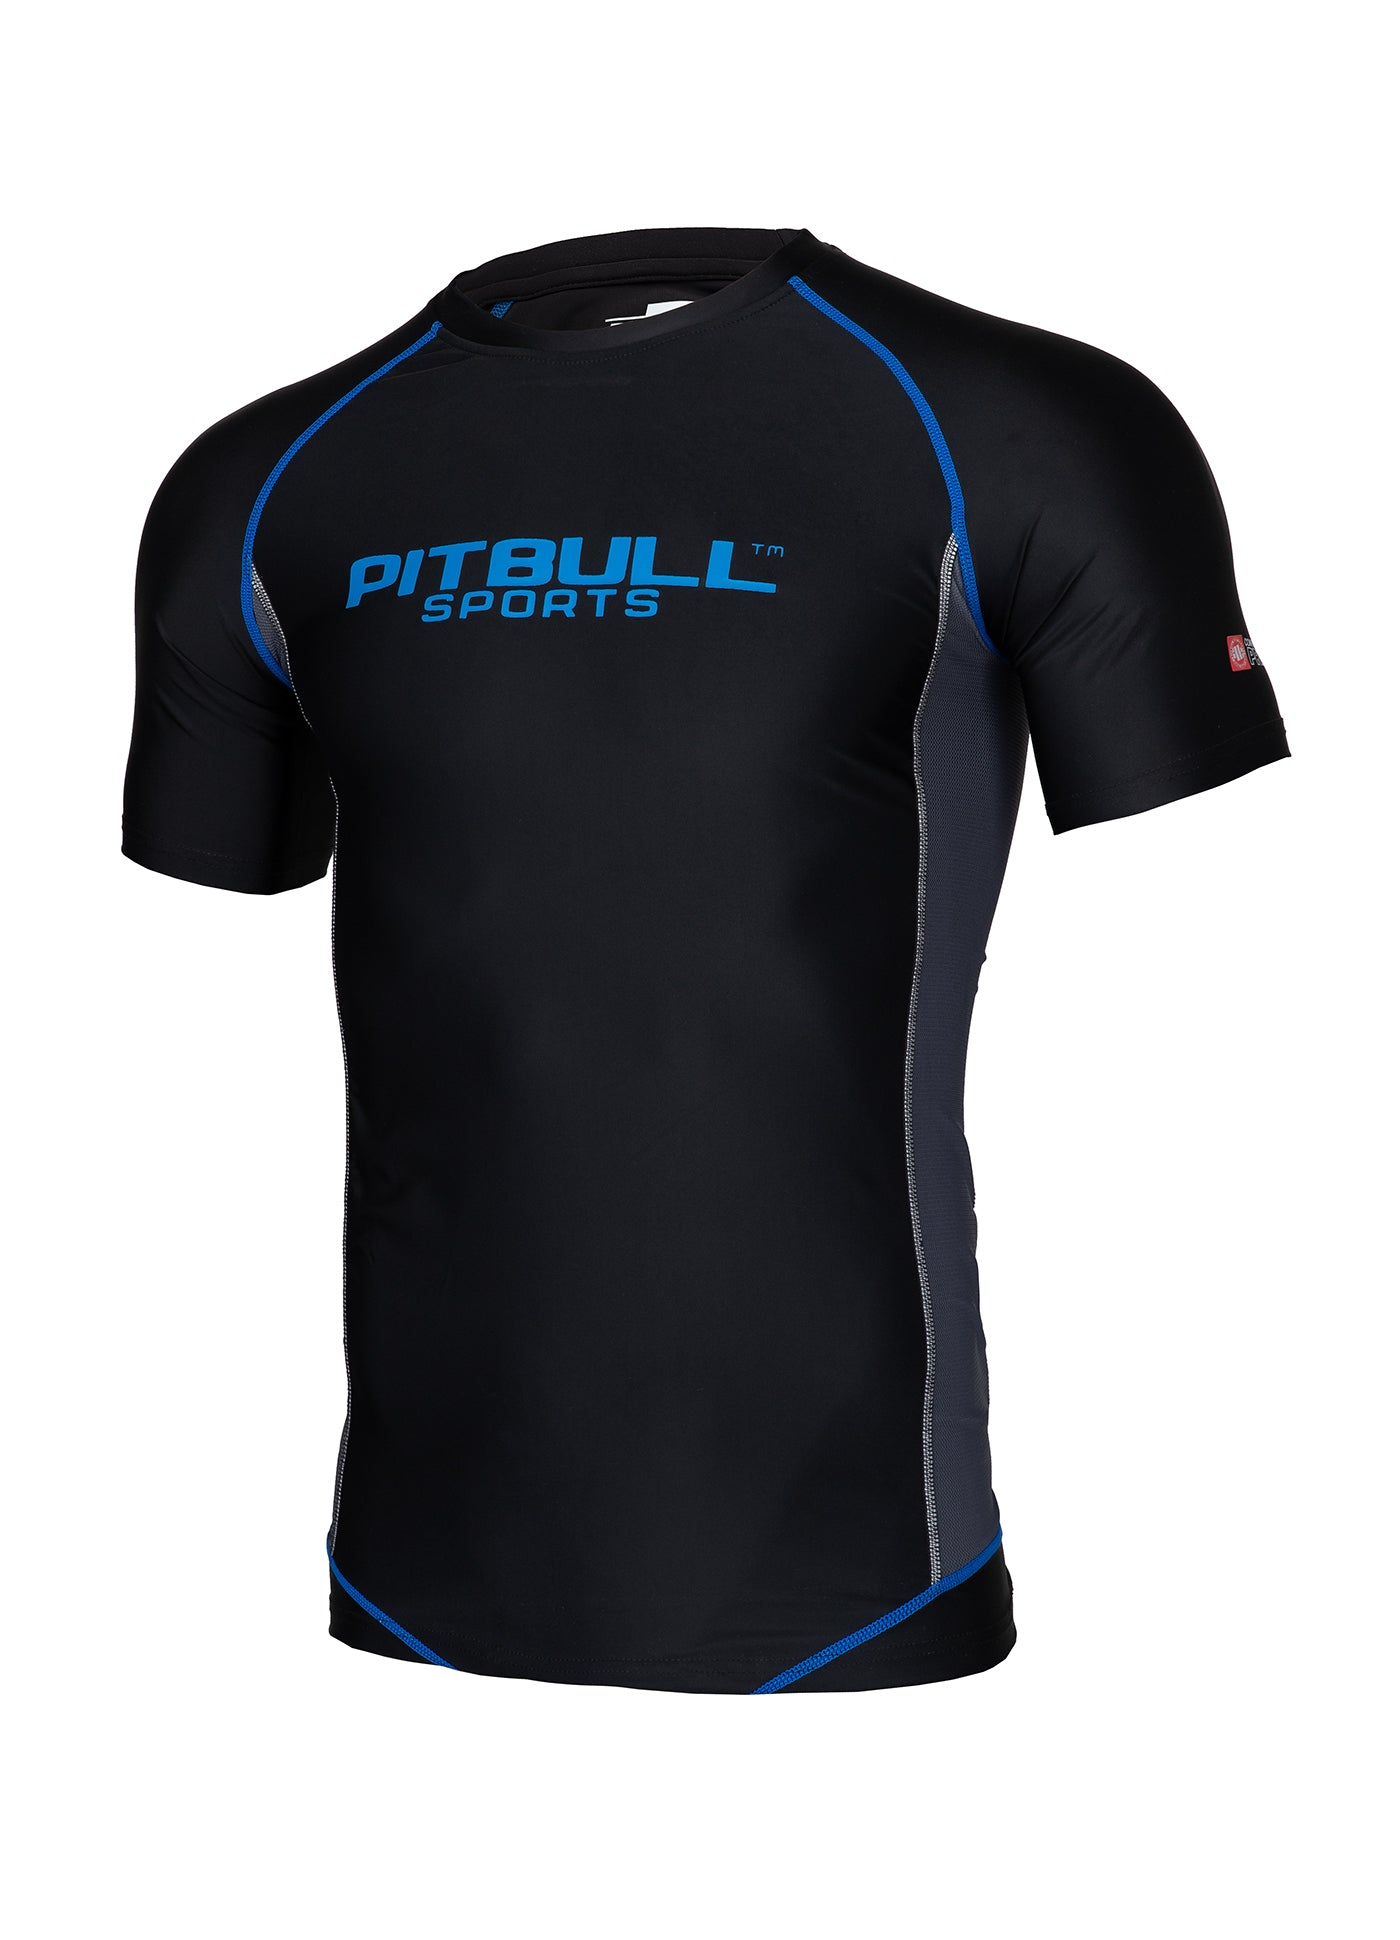 SHORTSLEEVE RASHGUARD PRO PLUS Black/Atomic Blue - pitbullwestcoast